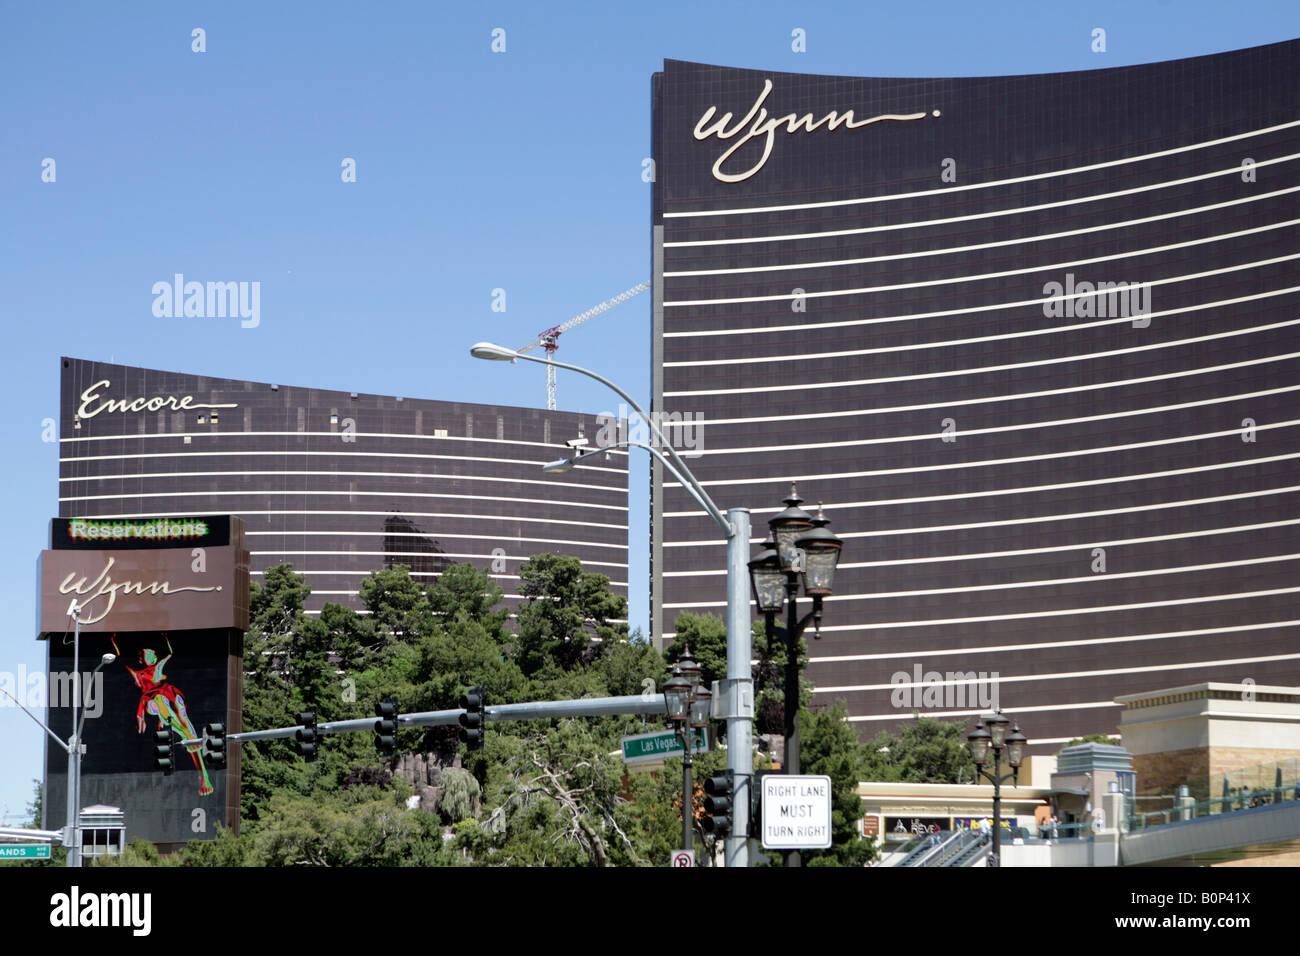 The Wynn Hotel Las Vegas With The New Encore Hotel Behind Under Stock Photo Alamy